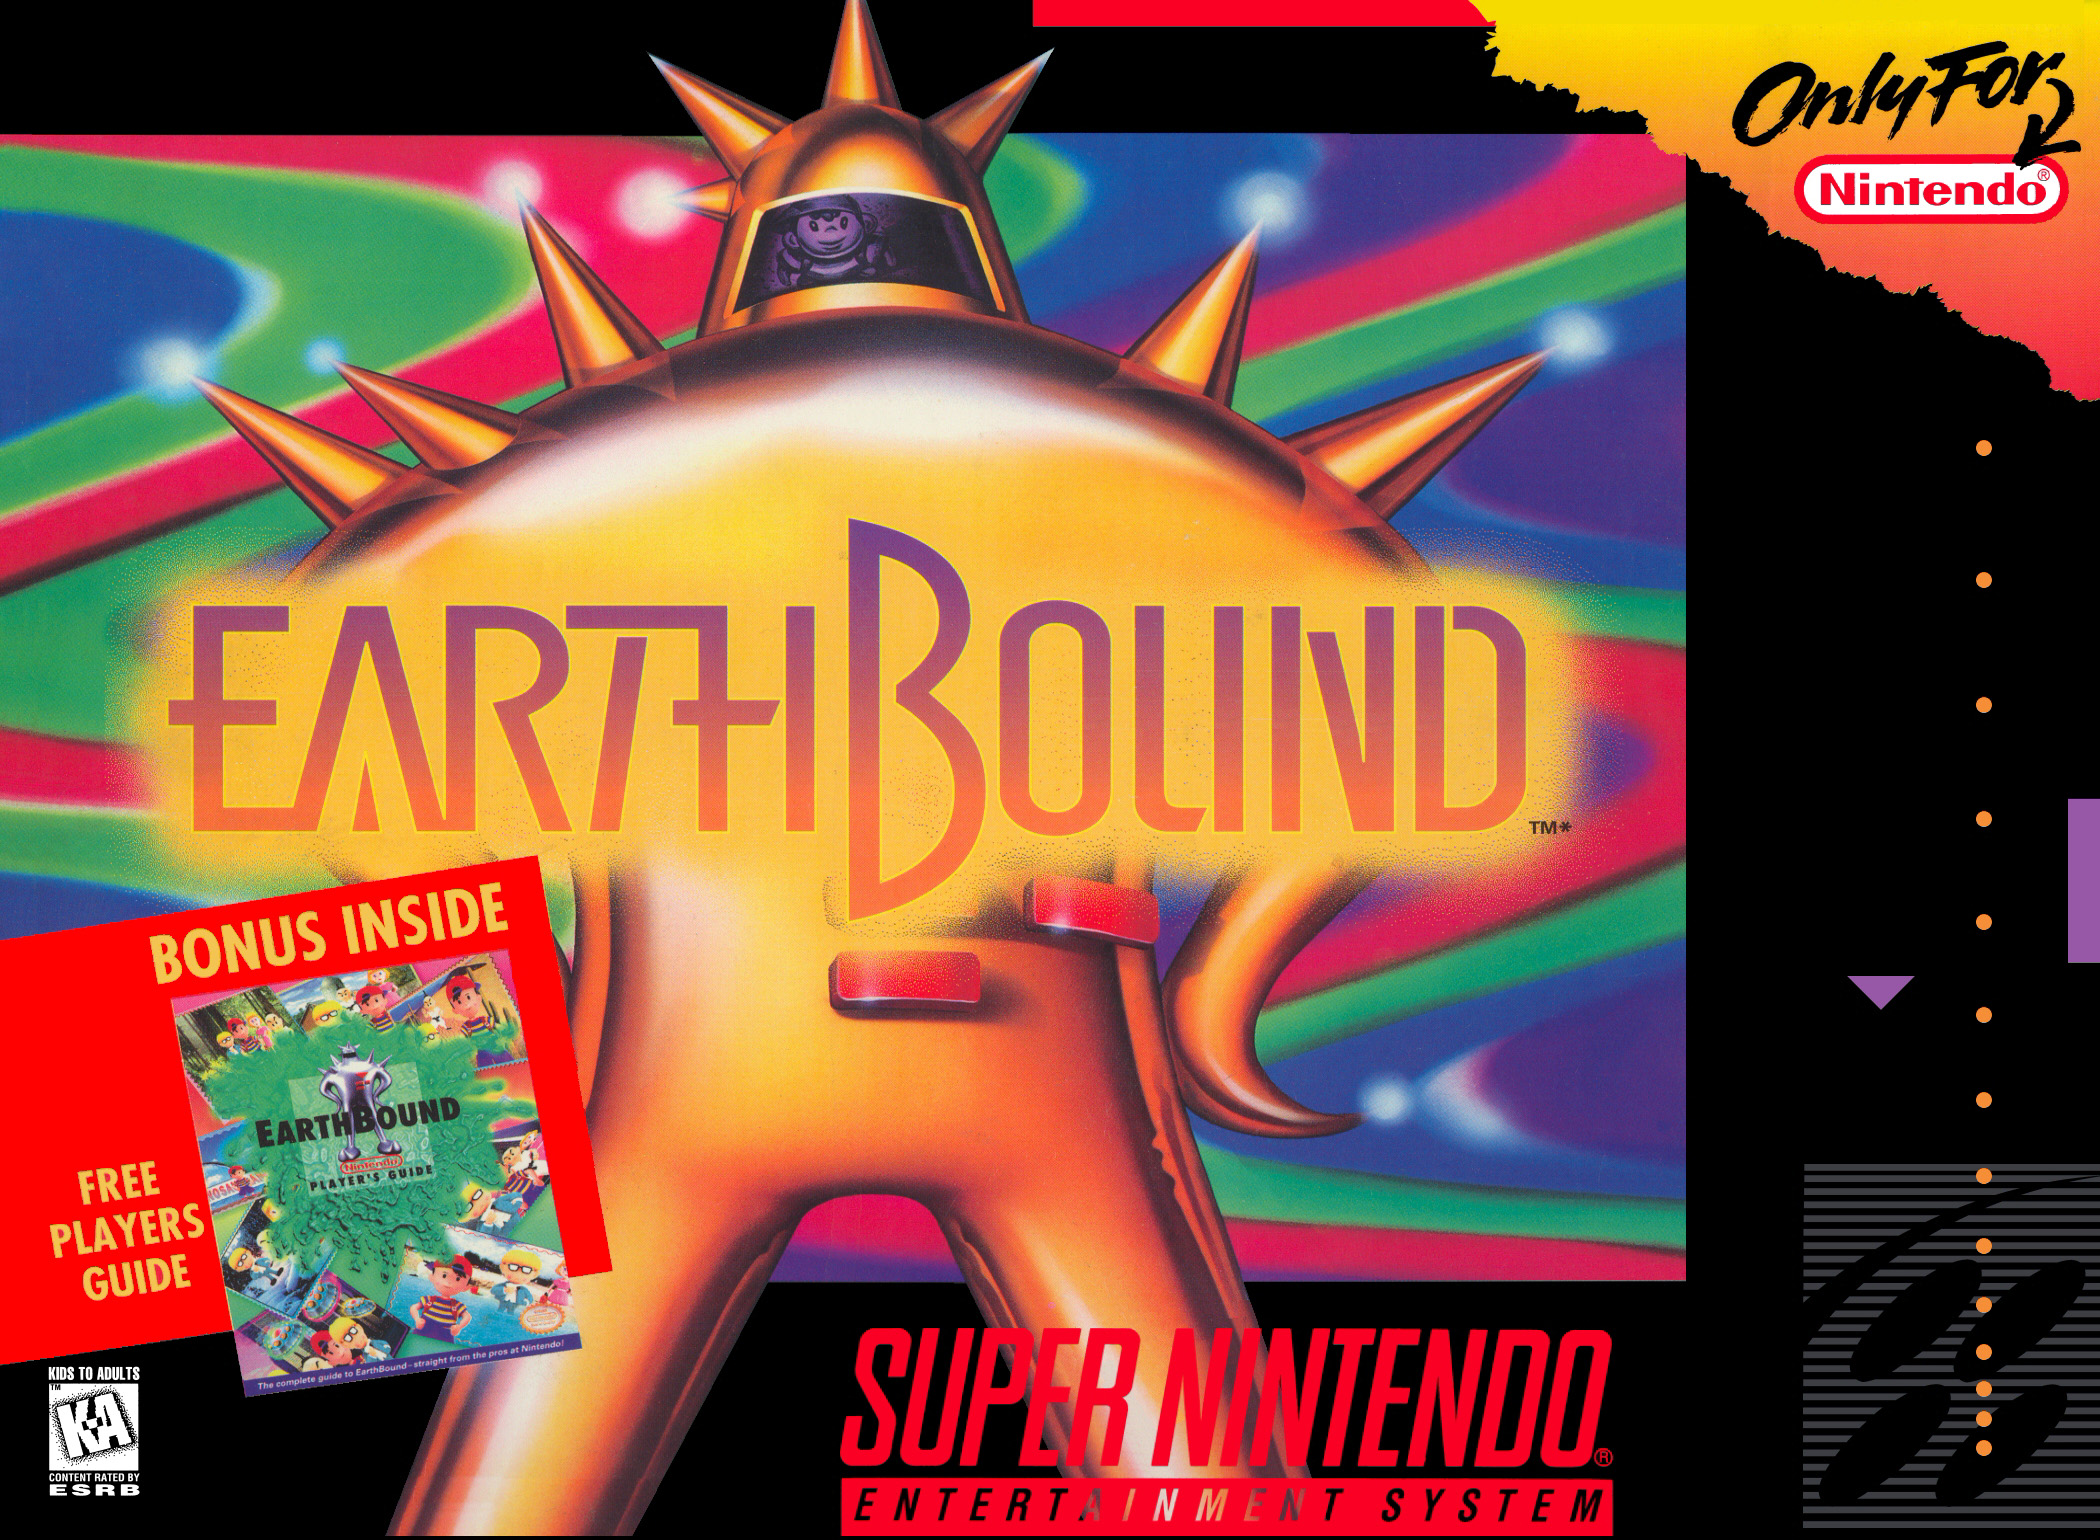 EarthBound - Super Nintendo - North American Box Art